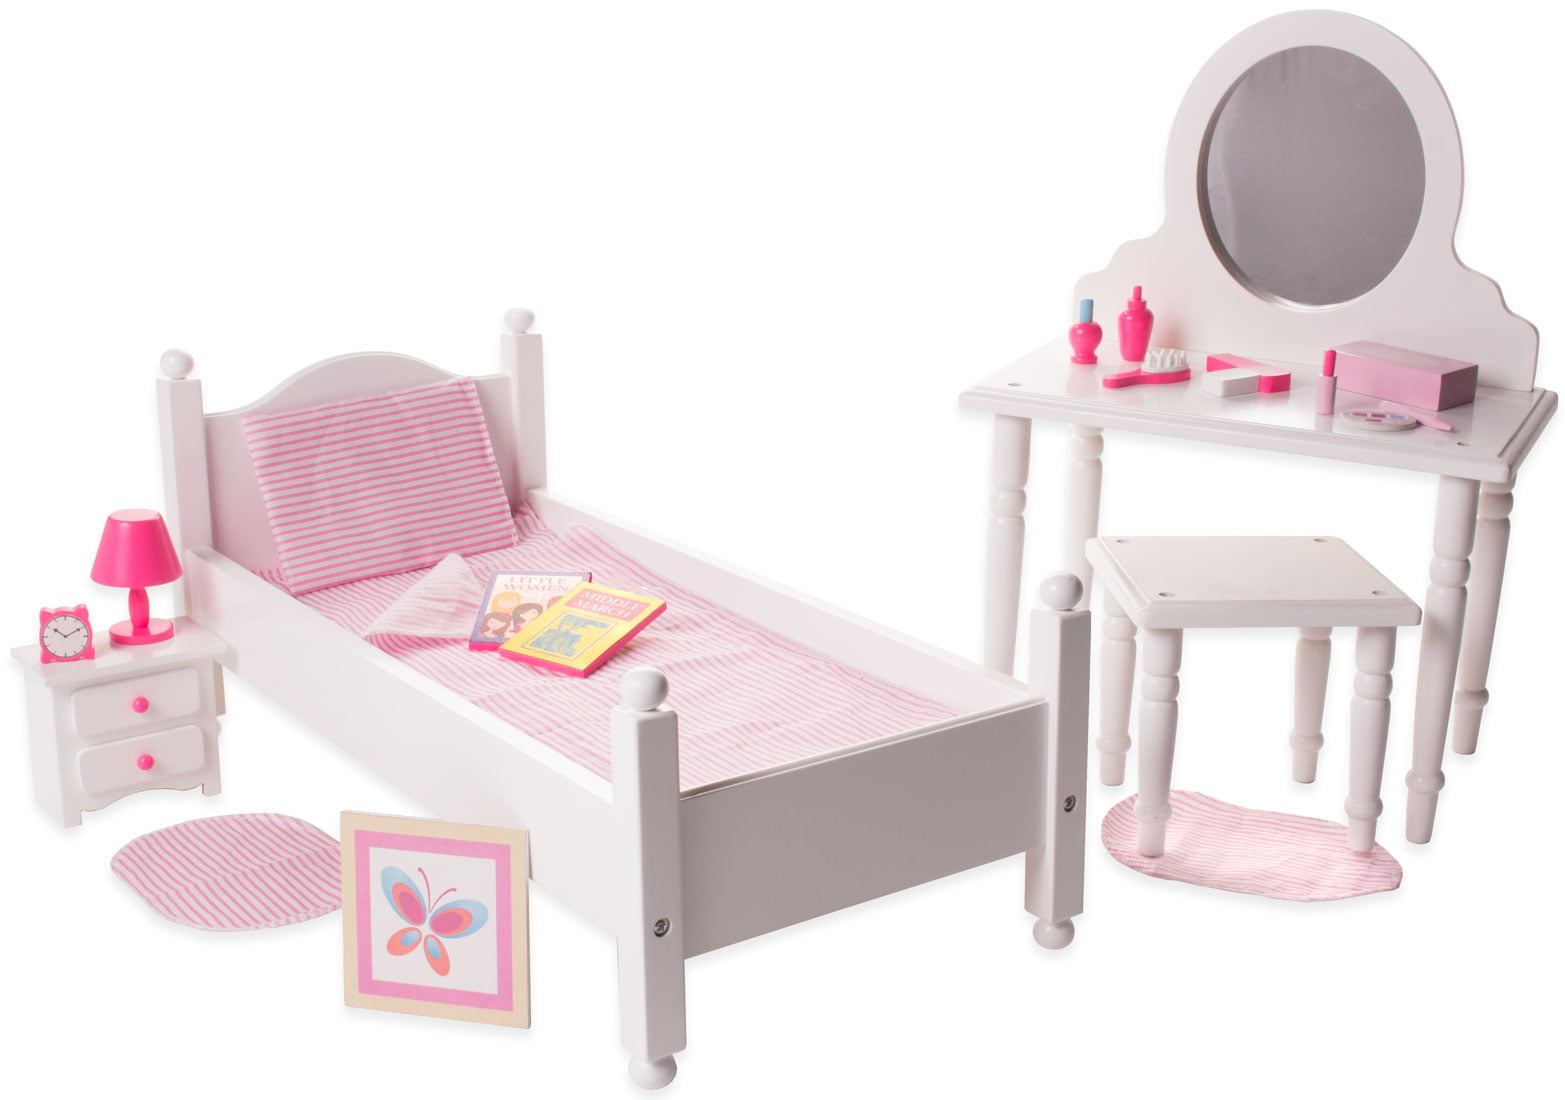 Eimmie 18 Inch Doll Furniture Single Bed & Vanity with Accessories Bedroom Pack by